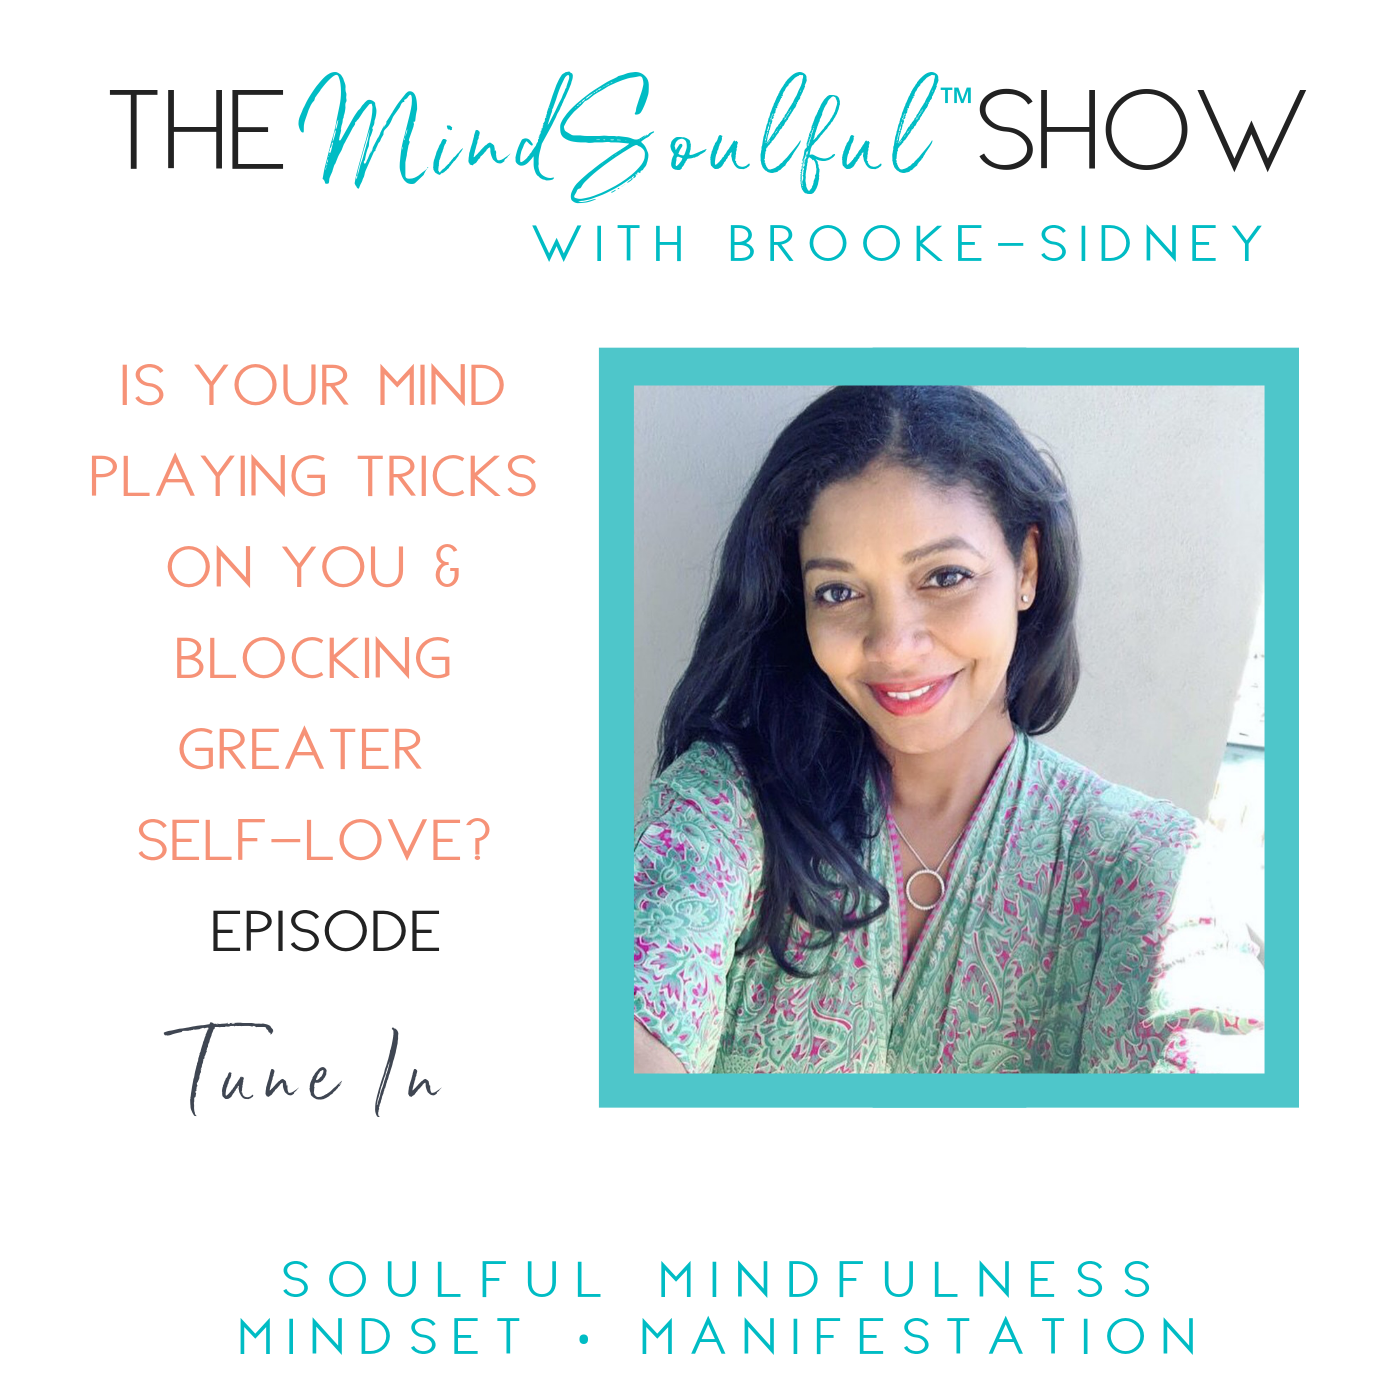 THE MINDSOULFUL SHOW - IS YOUR MIND PLAYING TRICKS ON YOU & BLOCKING GREATER SELF-LOVE EPISODE.png